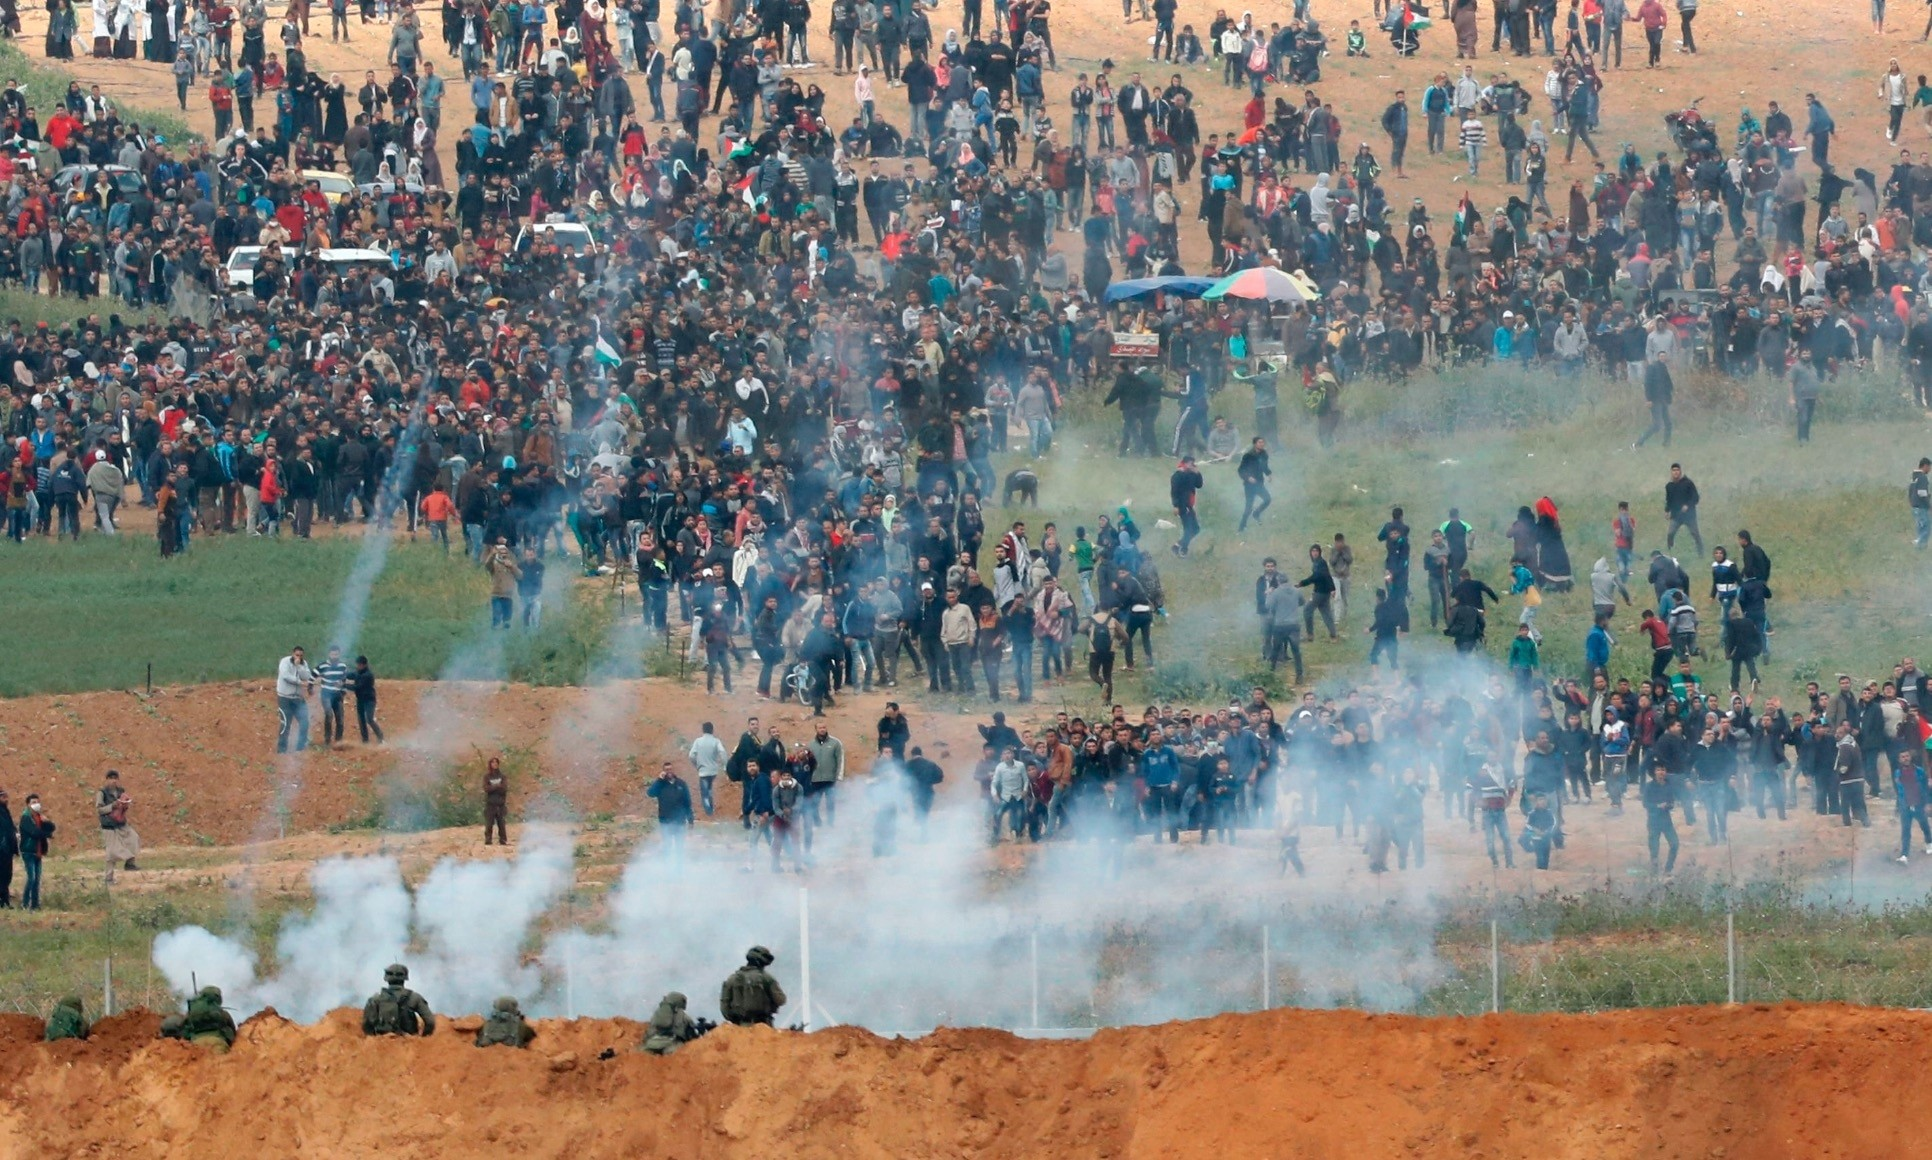 This picture from the southern Israeli kibbutz of Nahal Oz across the border from the Gaza strip shows tear gas grenades being thrown during a Palestinian tent city protest commemorating Land Day, with Israeli soldiers seen below in the foreground.